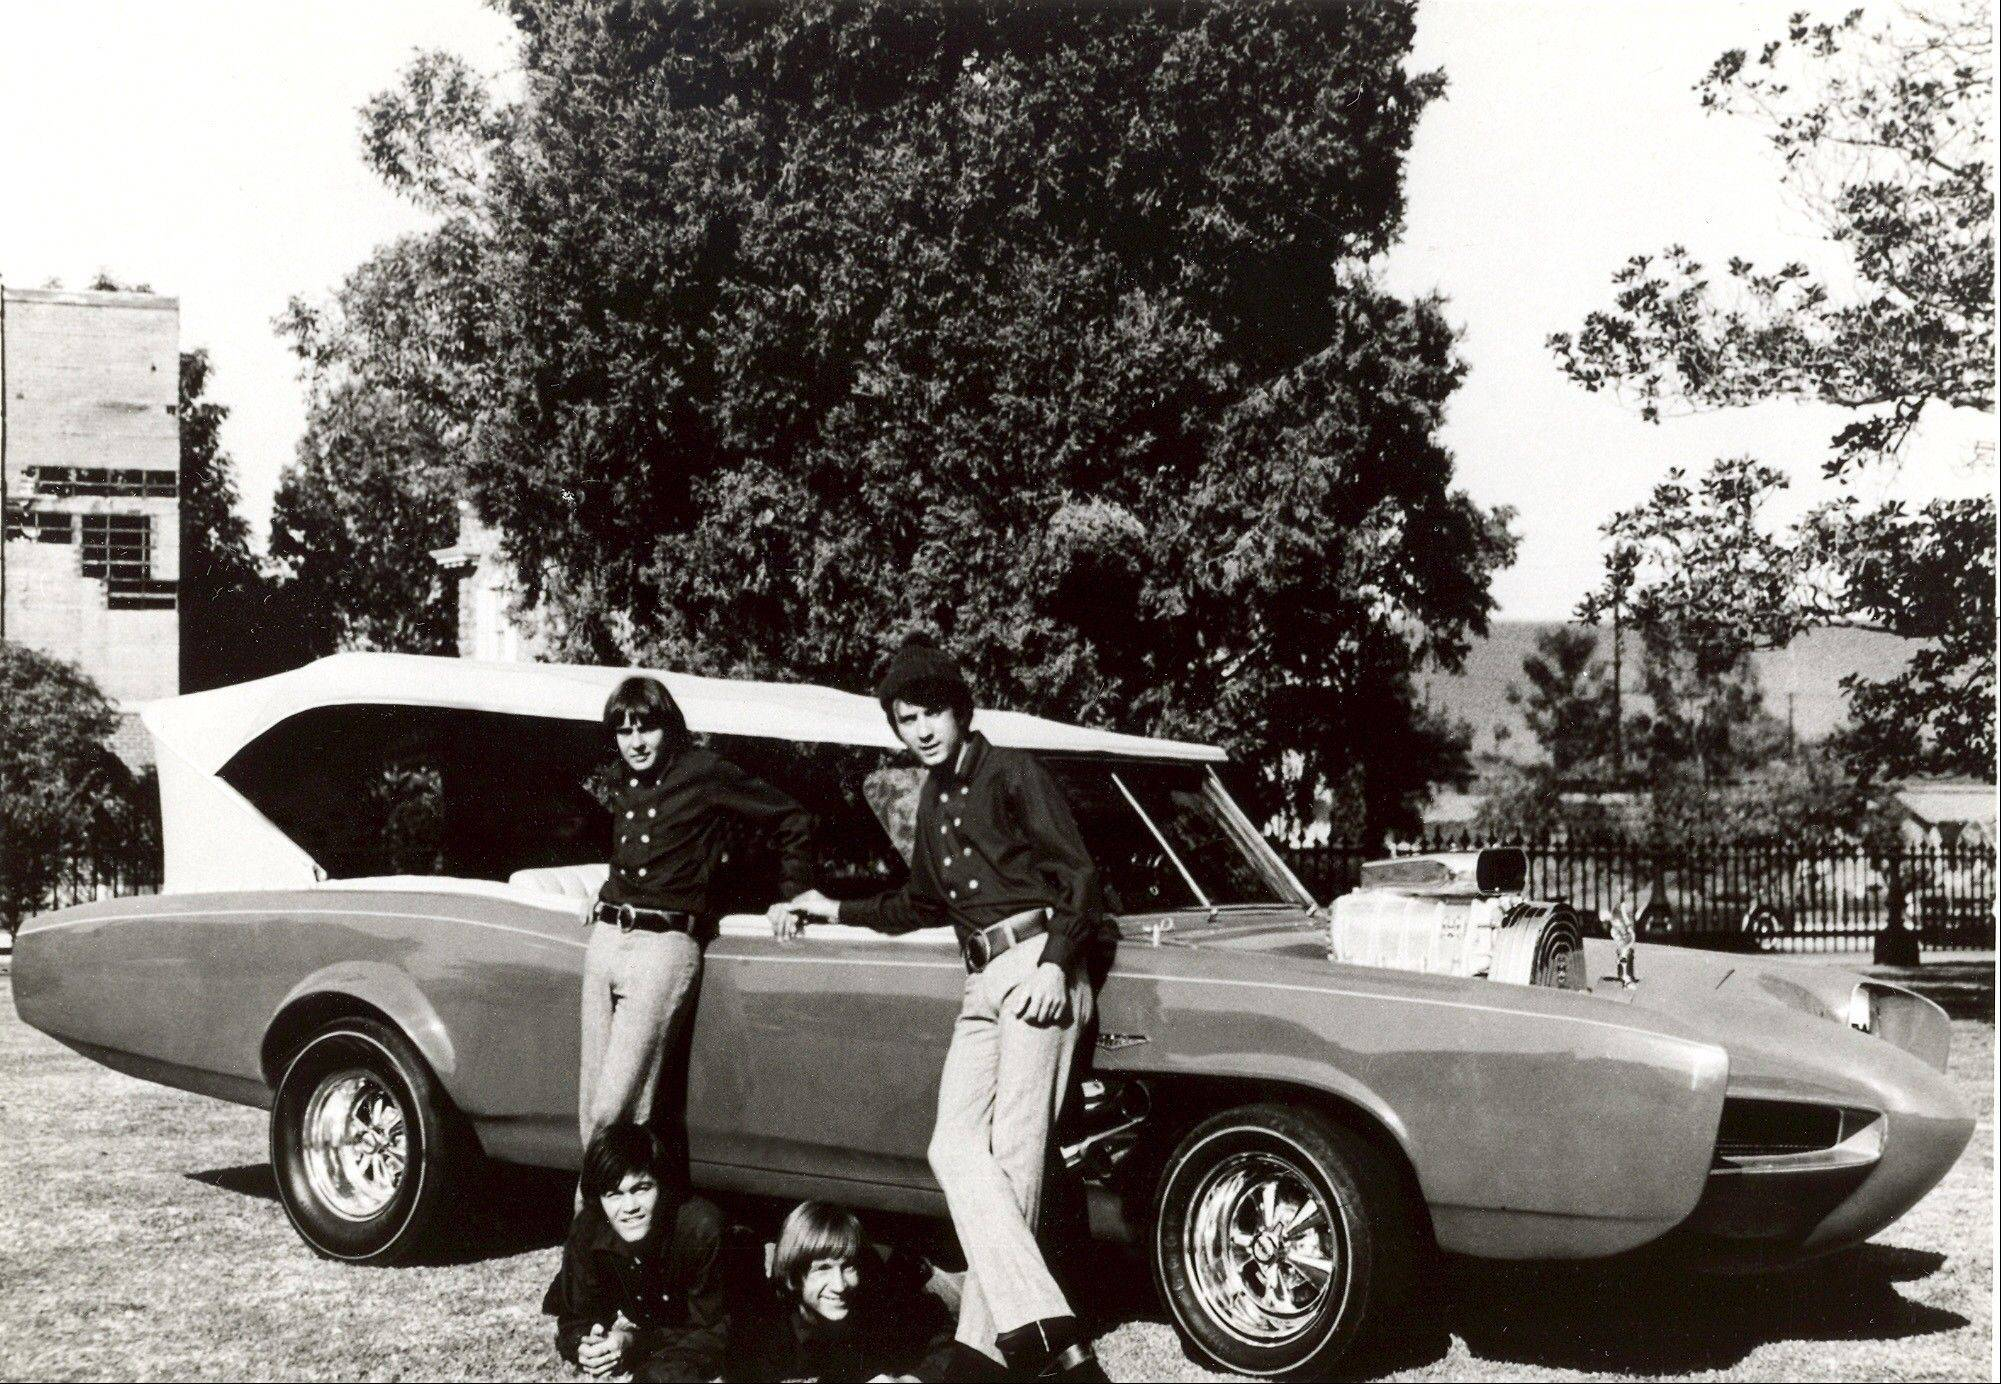 "In this 1966 file photo, cast members of the television show ""The Monkees,"" from top left, Davy Jones, Michael Nesmith, from lower left, Micky Dolenz, and Peter Tork pose next to their customized Pontiac GTO. Jones died Wednesday Feb. 29, 2012 in Florida. He was 66. Jones rose to fame in 1965 when he joined The Monkees, a British popular rock group formed for a television show. Jones sang lead vocals on songs like ""I Wanna Be Free"" and ""Daydream Believer."""